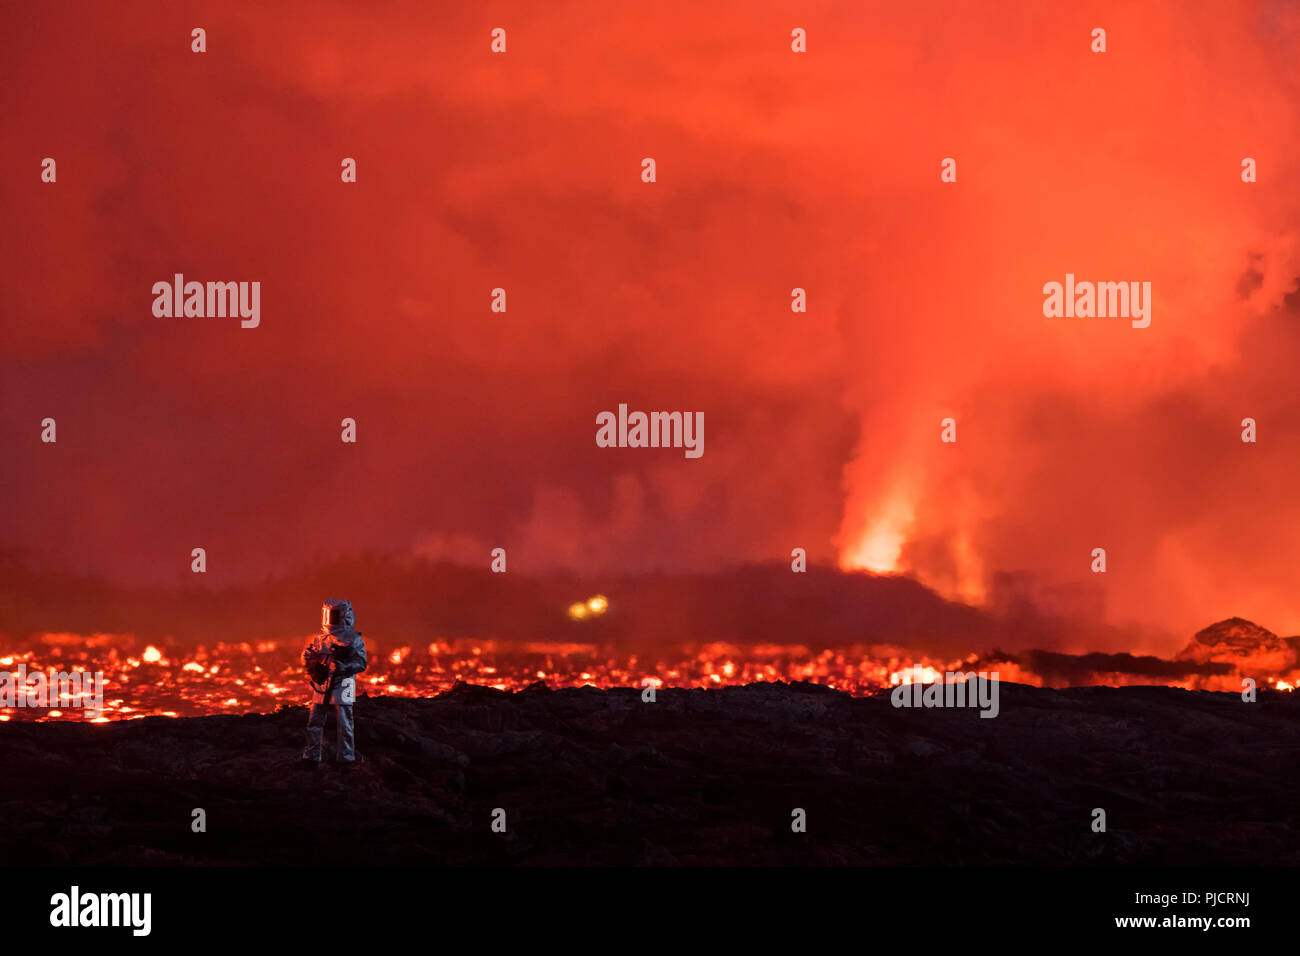 a firefighter tests heat protective gear next to a glowing river of hot lava erupting from fissure 8 (in background) of Kilauea Volcano east rift zone - Stock Image